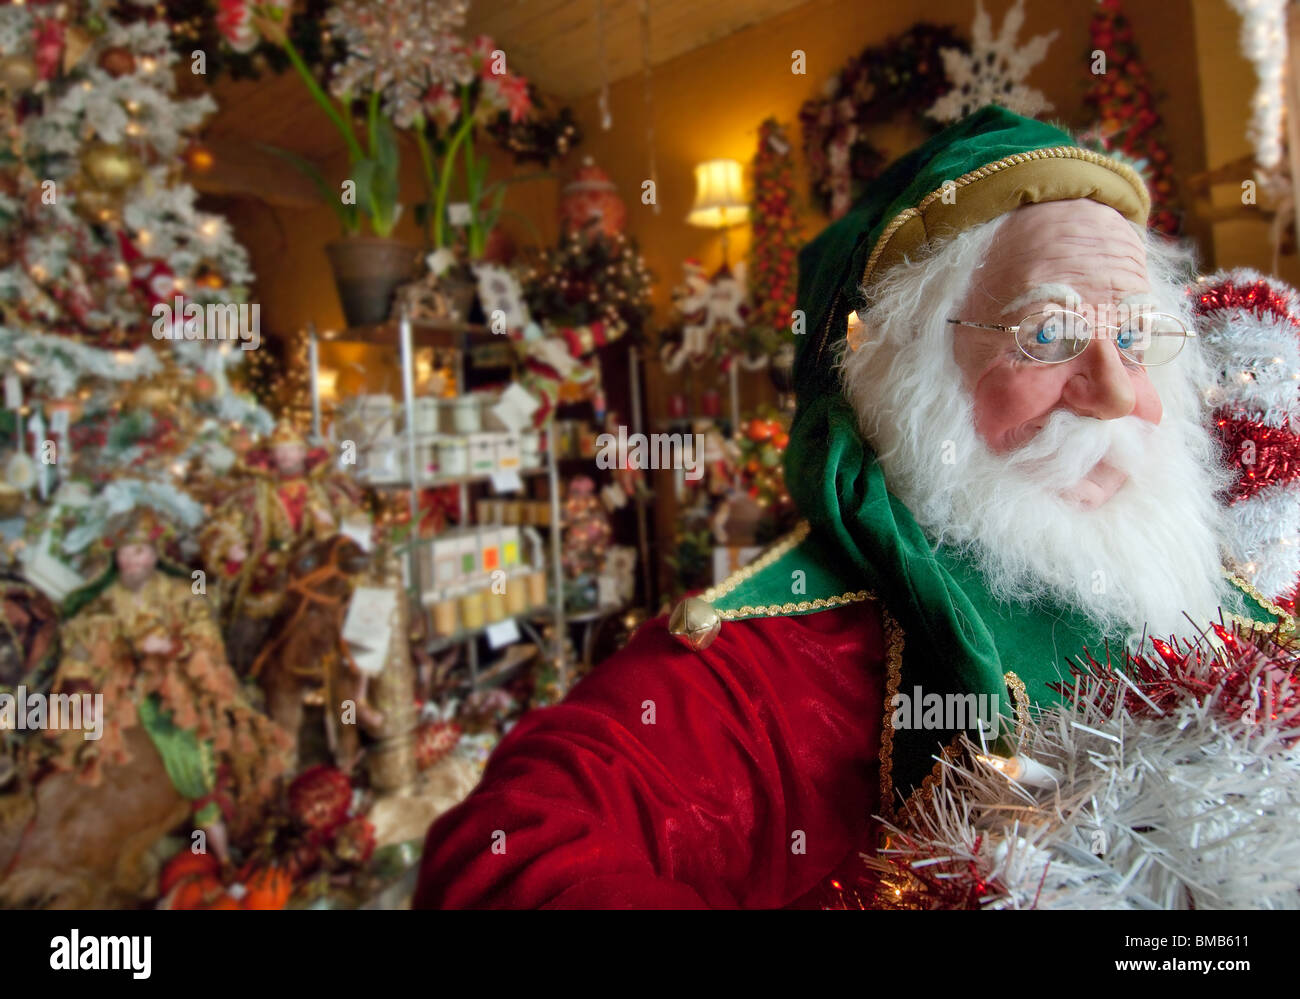 Life-size Santa Claus figure in store display, Fort Lauderdale, Florida, USA - Stock Image